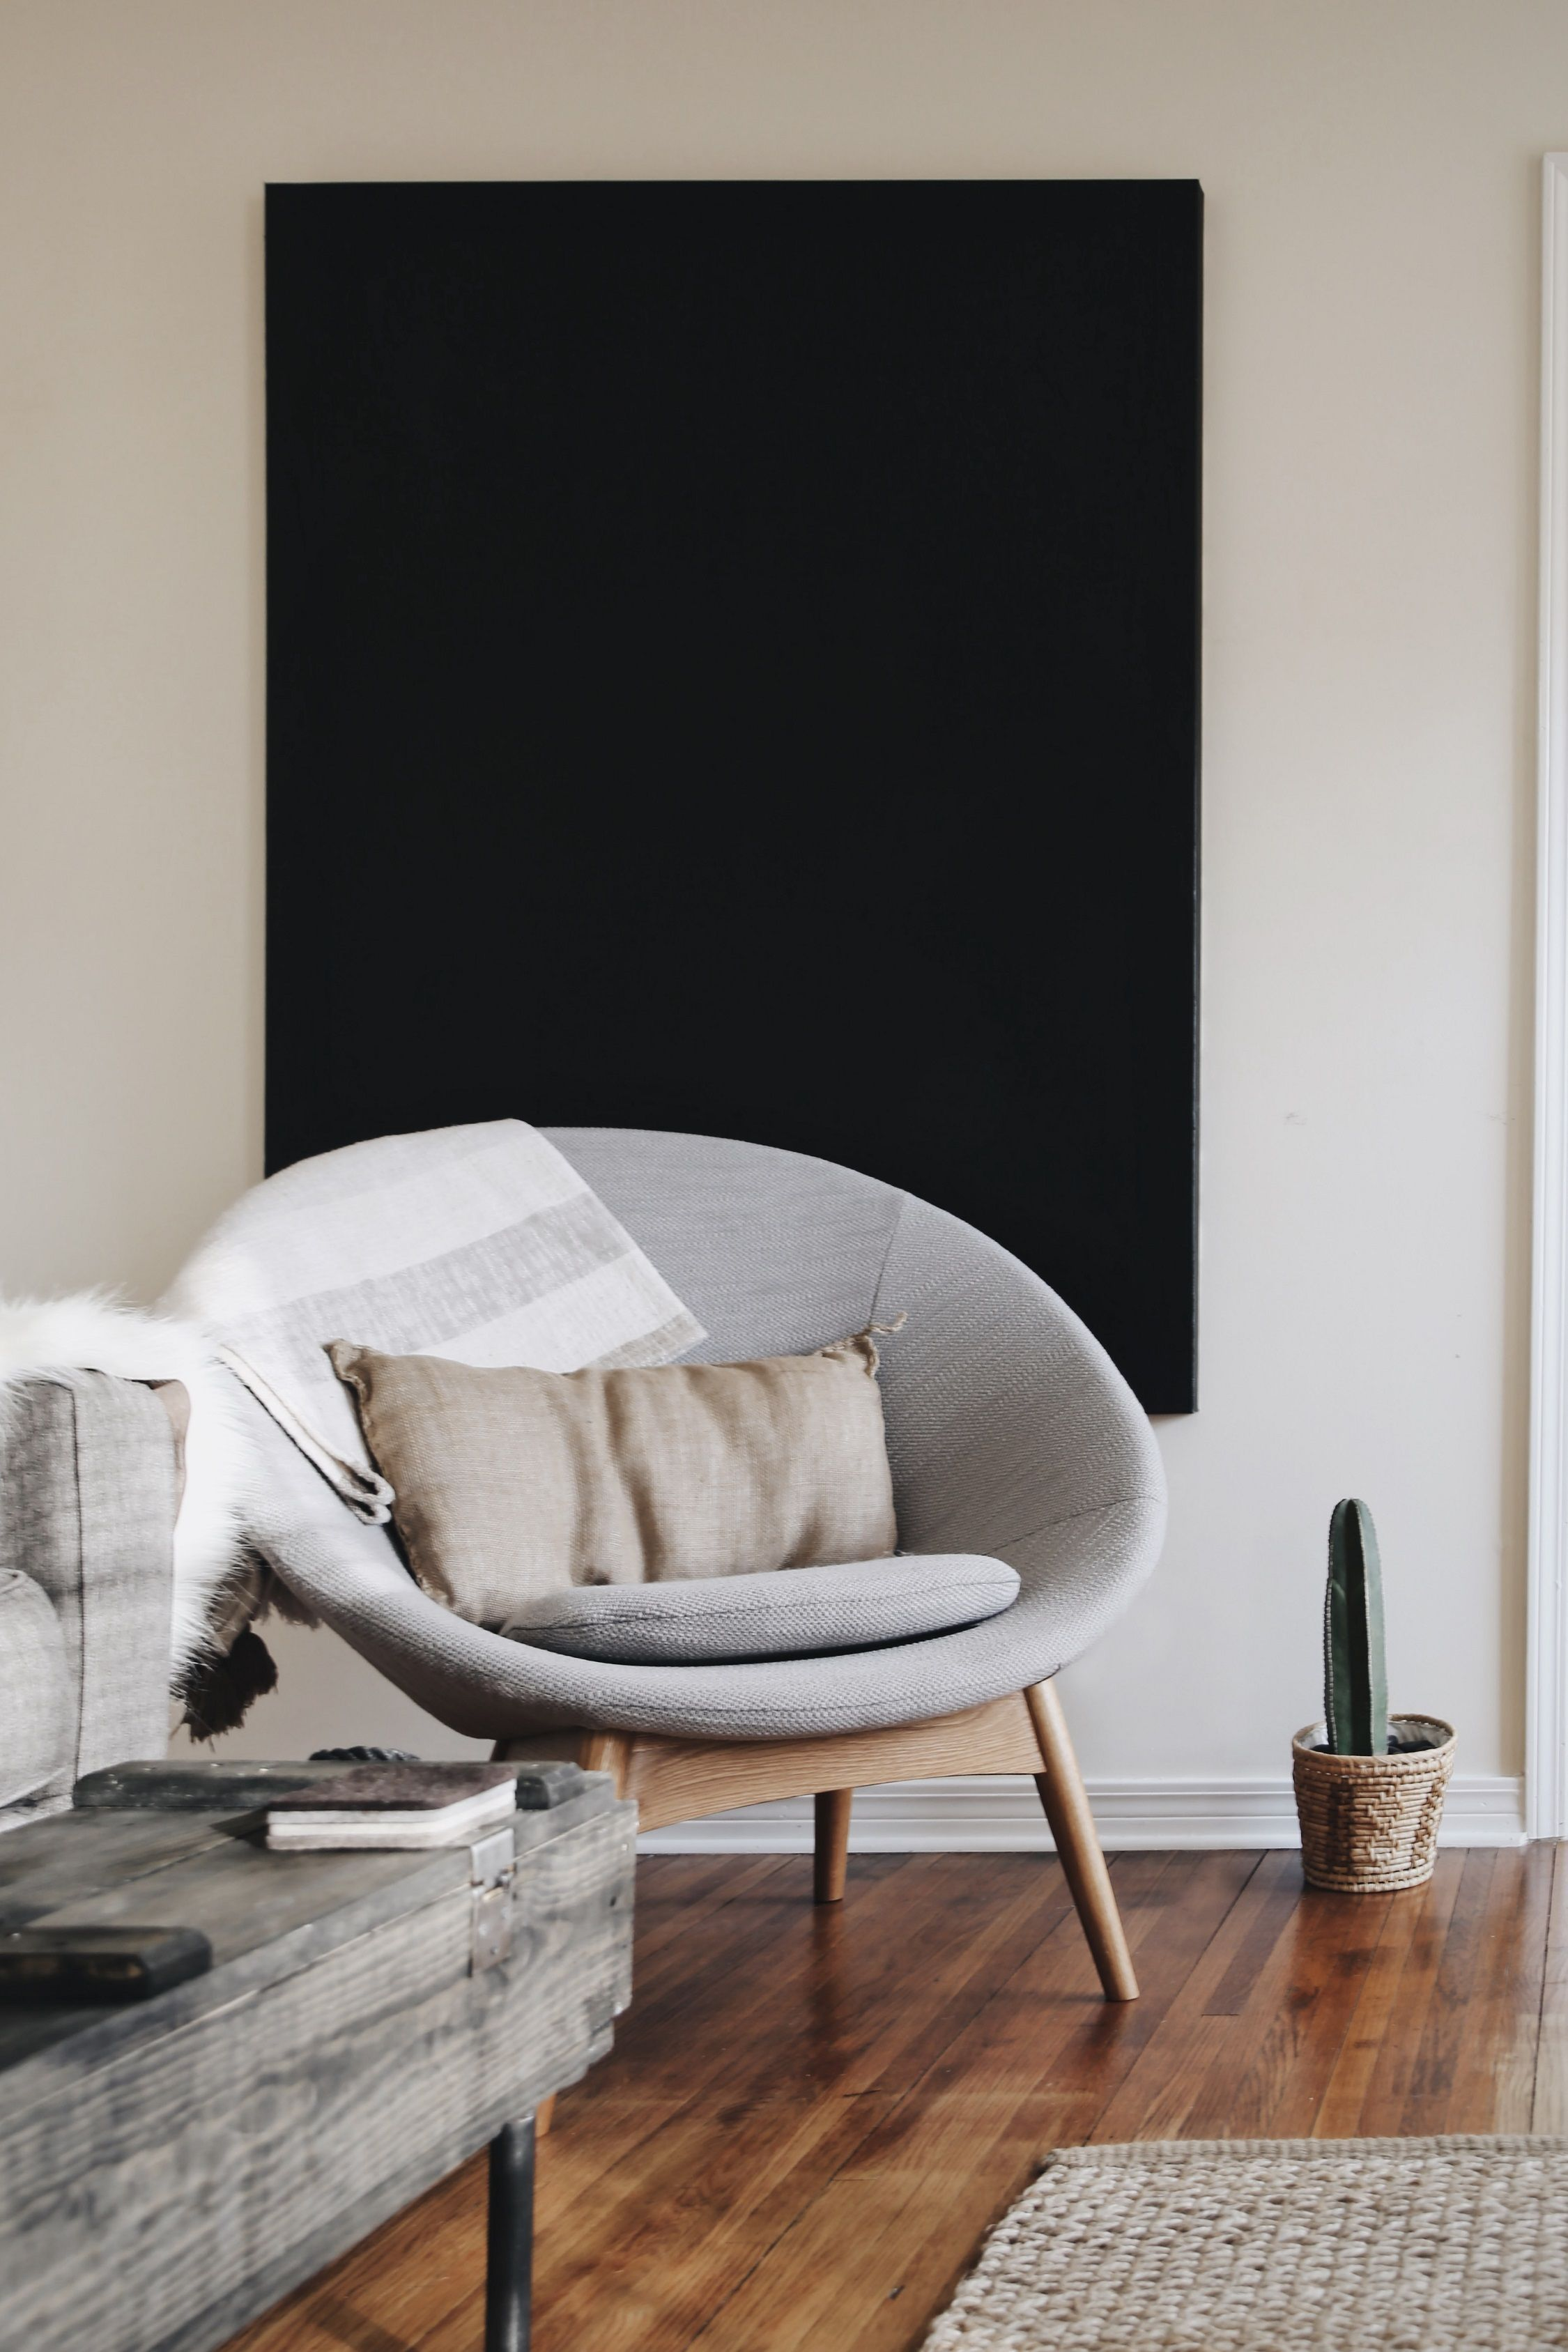 When It Comes To Decorating A Living Room You Want To Make Sure It S Both Comfortable And I In 2020 Wohnzimmer Dekor Modern Wohnzimmersitzecke Moderne Wohnzimmerideen